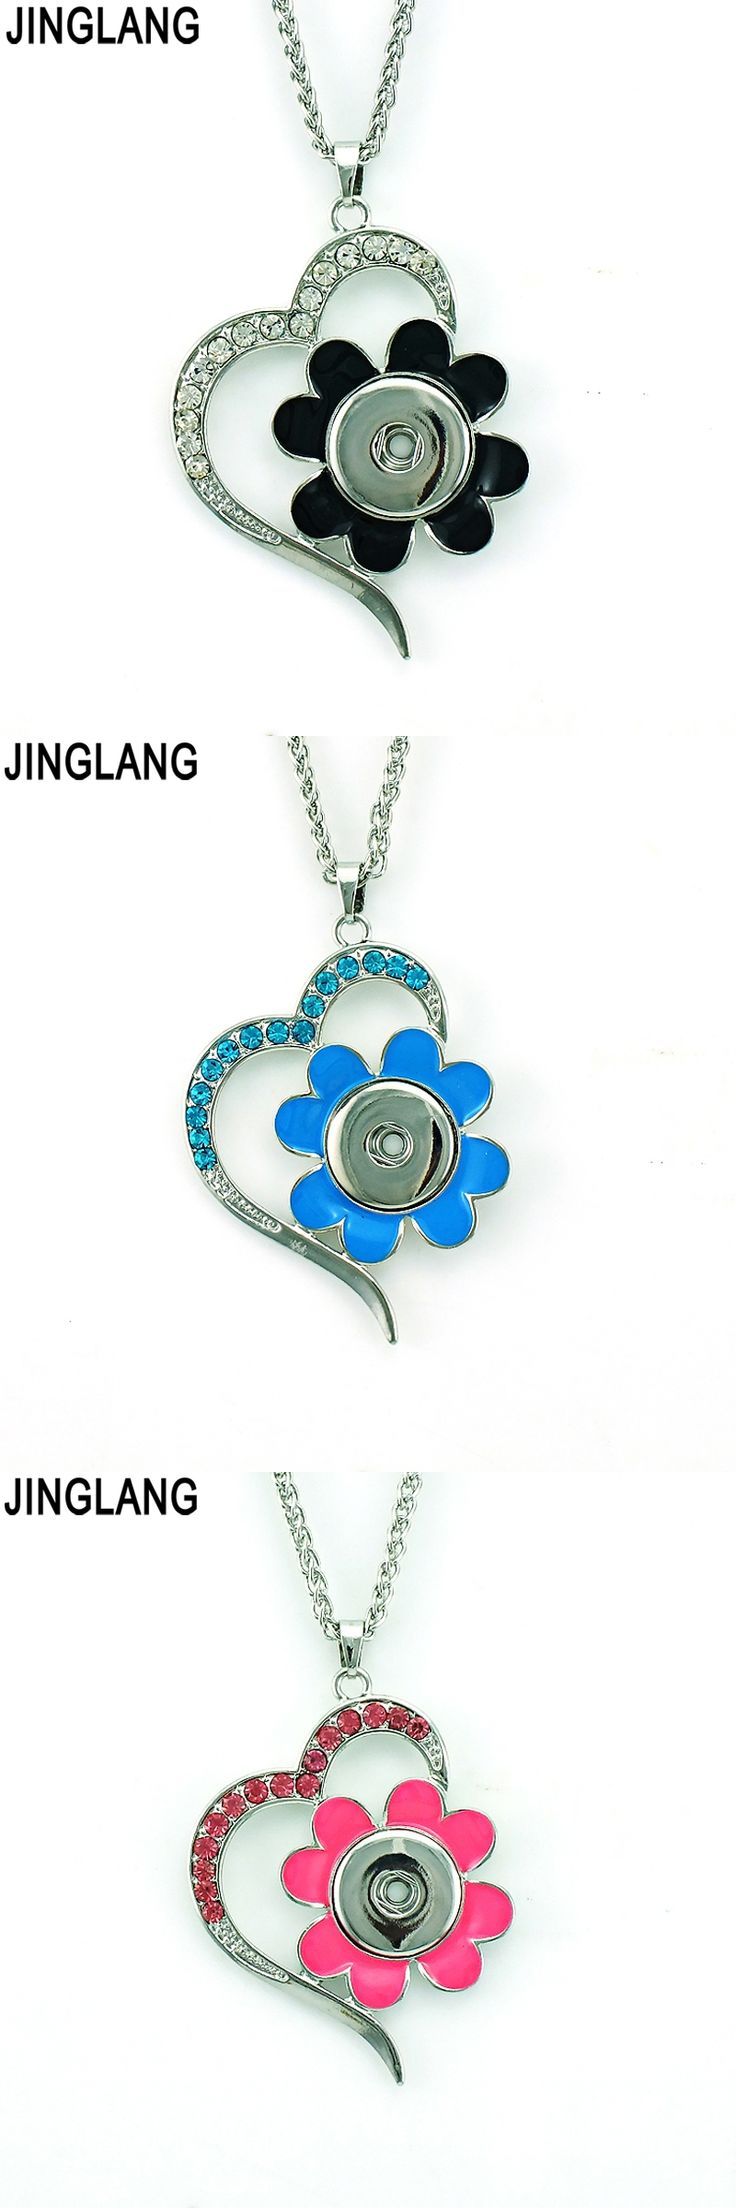 Necklaces pendants 144 pinterest fashion pendant necklaces 18mm snap buttons rhinestone heart interchangeable statement necklaces for women jewelry mozeypictures Gallery